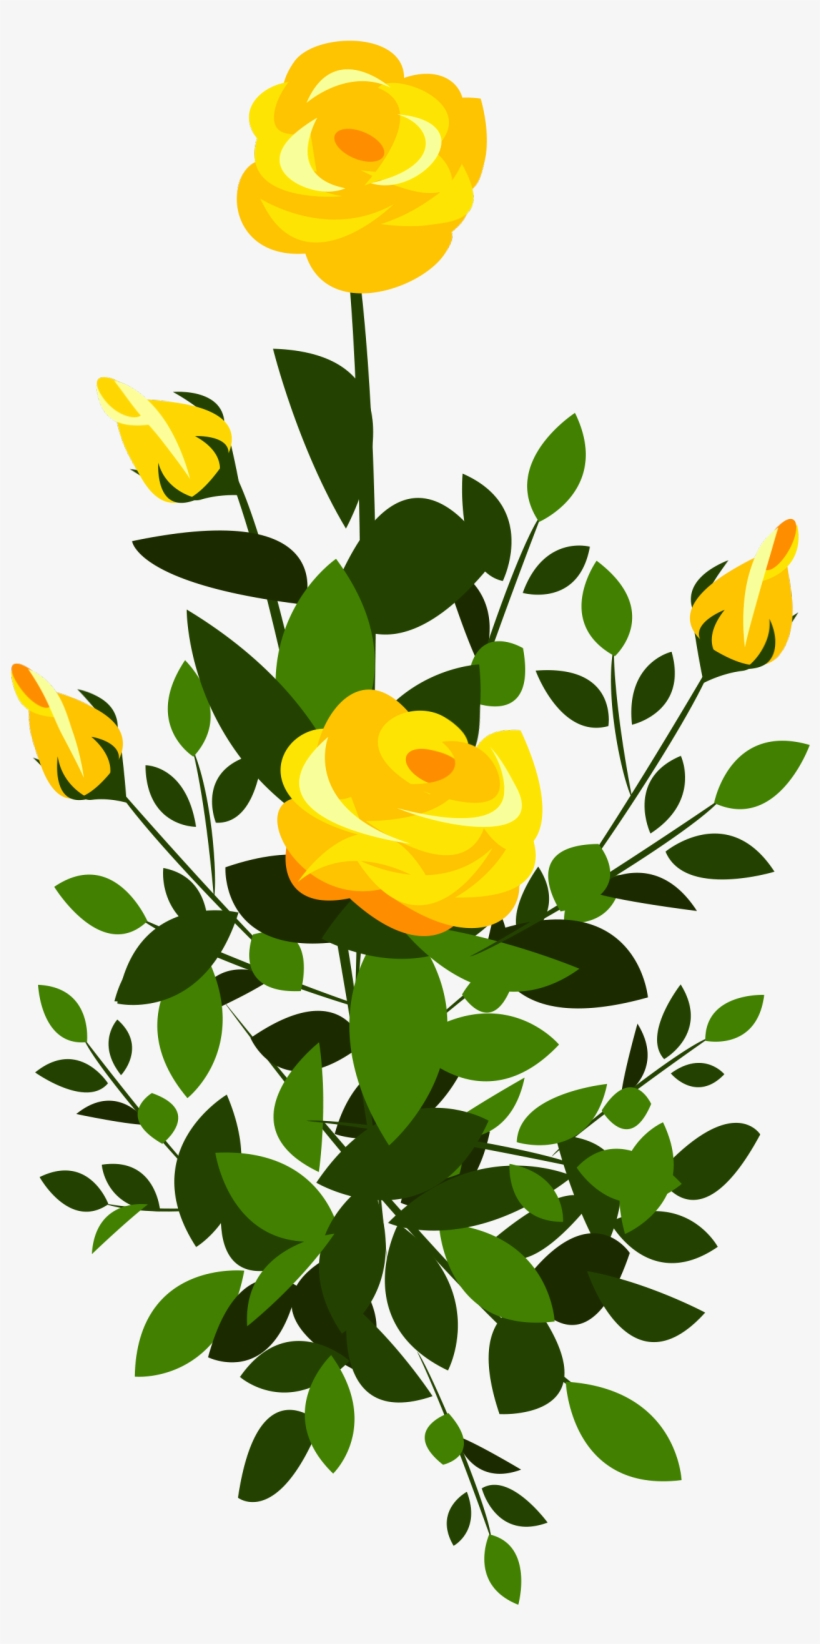 Transparent flower rose yellow clipart banner freeuse stock Yellow Rose Bush Png Clipart Image - Yellow Rose Bush Png ... banner freeuse stock